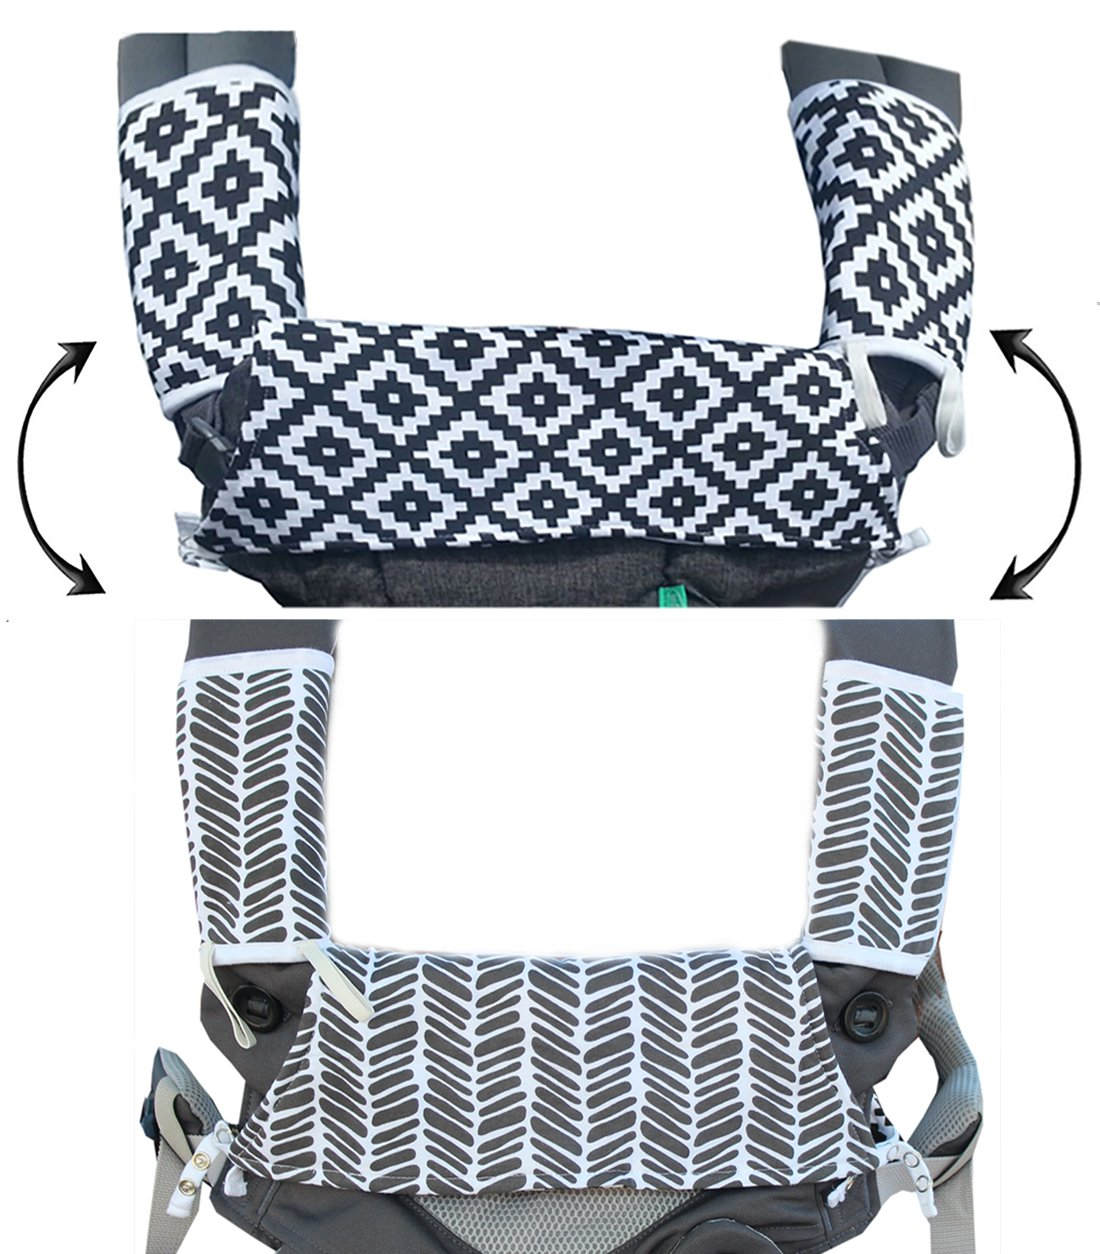 Drool & Teething Pad | Fits All Carriers | Reversible Organic Cotton 3-Piece Set - Ideal for Infant Toddler Girls & Boys [Patent Pending]